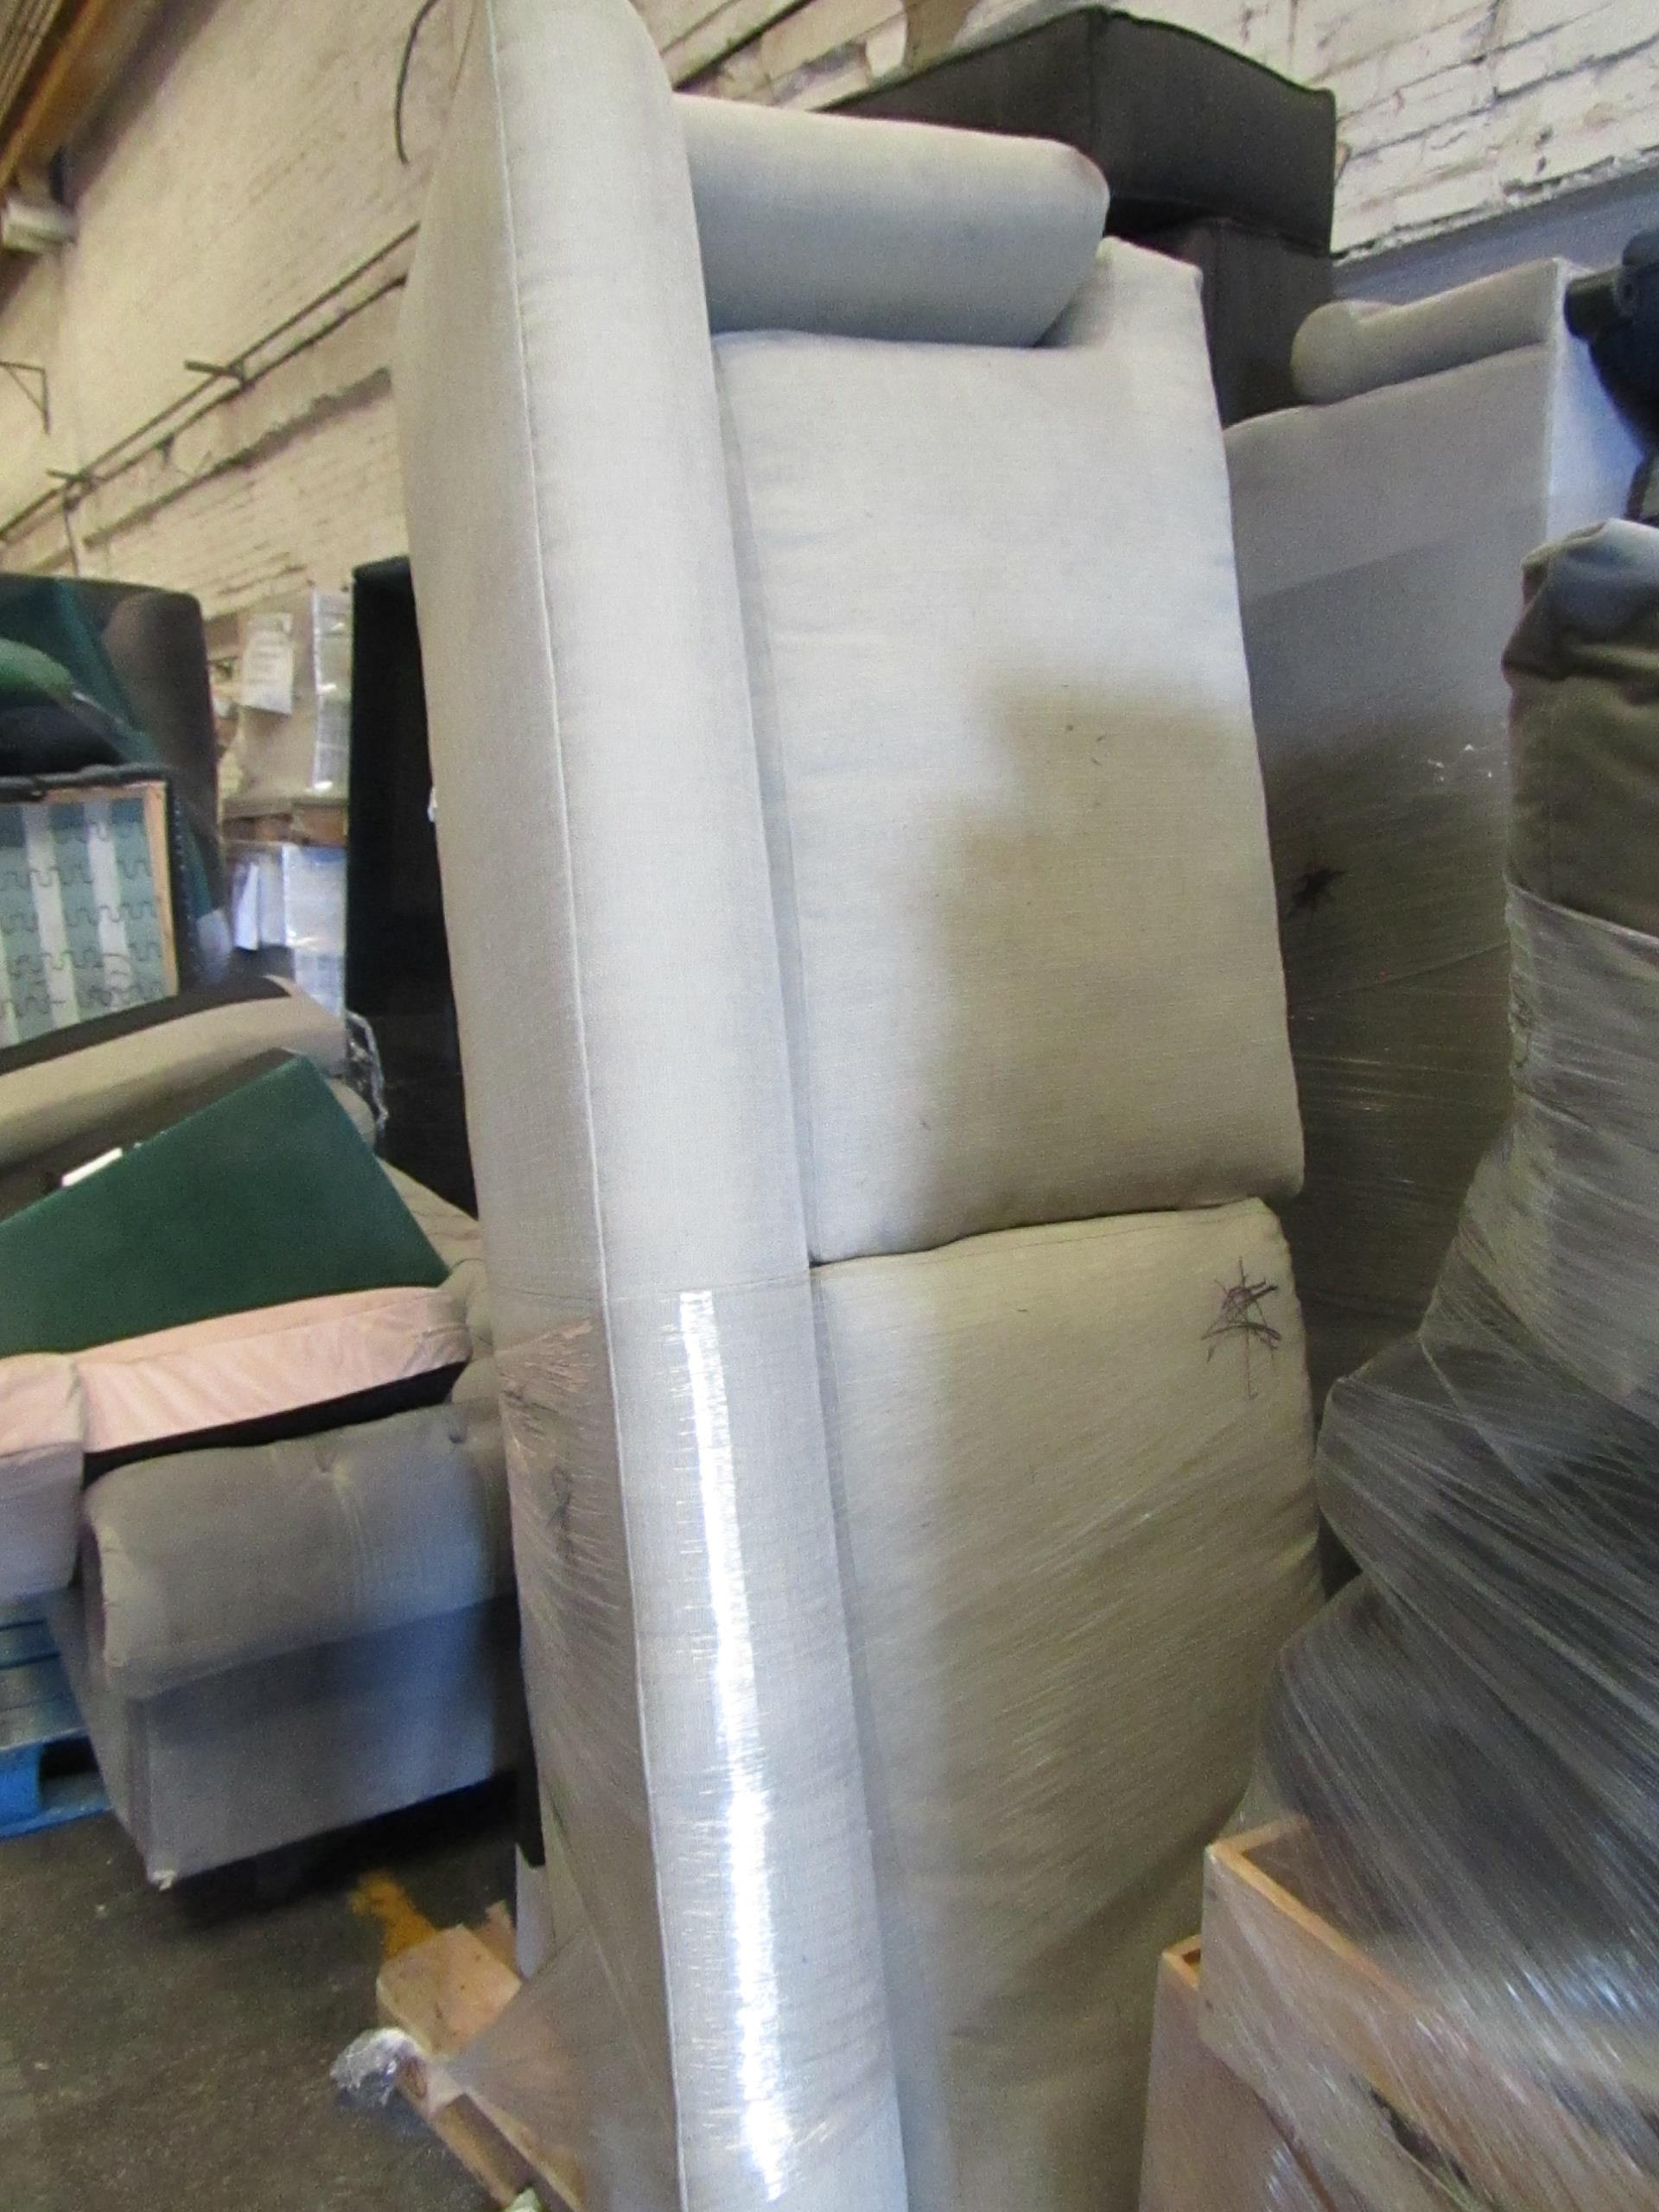 | 13X | PALLETS OF SWOON BER SOFAS, THESE ARE CUSTOMER RETURNS SO COULD HAVE MINOR DAMAGE, MAJOR - Image 10 of 11